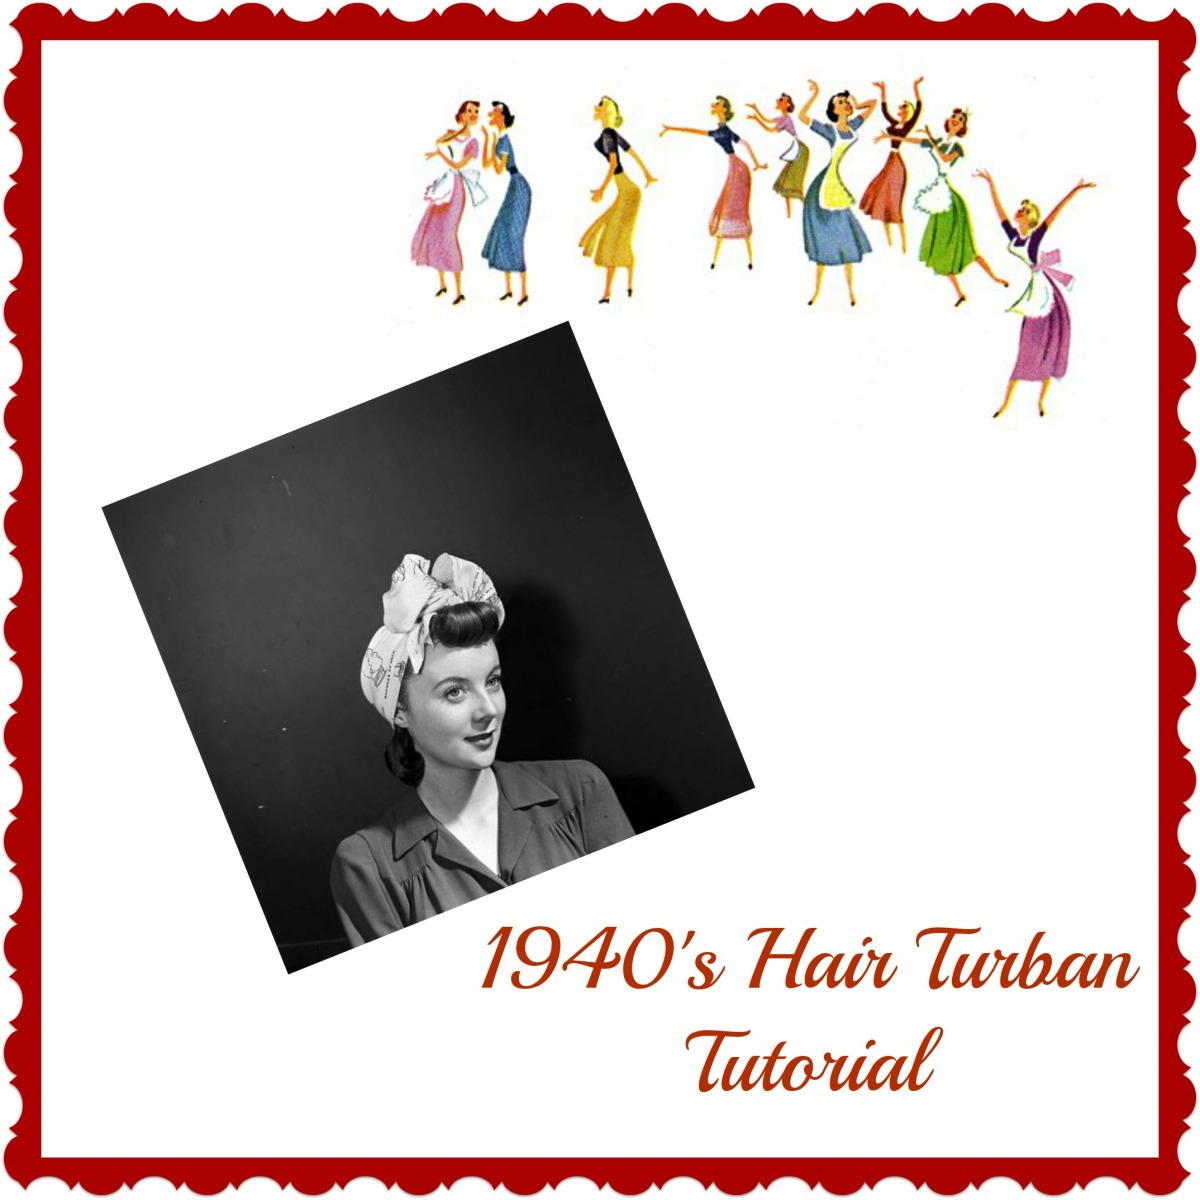 Accessories: 1940's Hair Turban